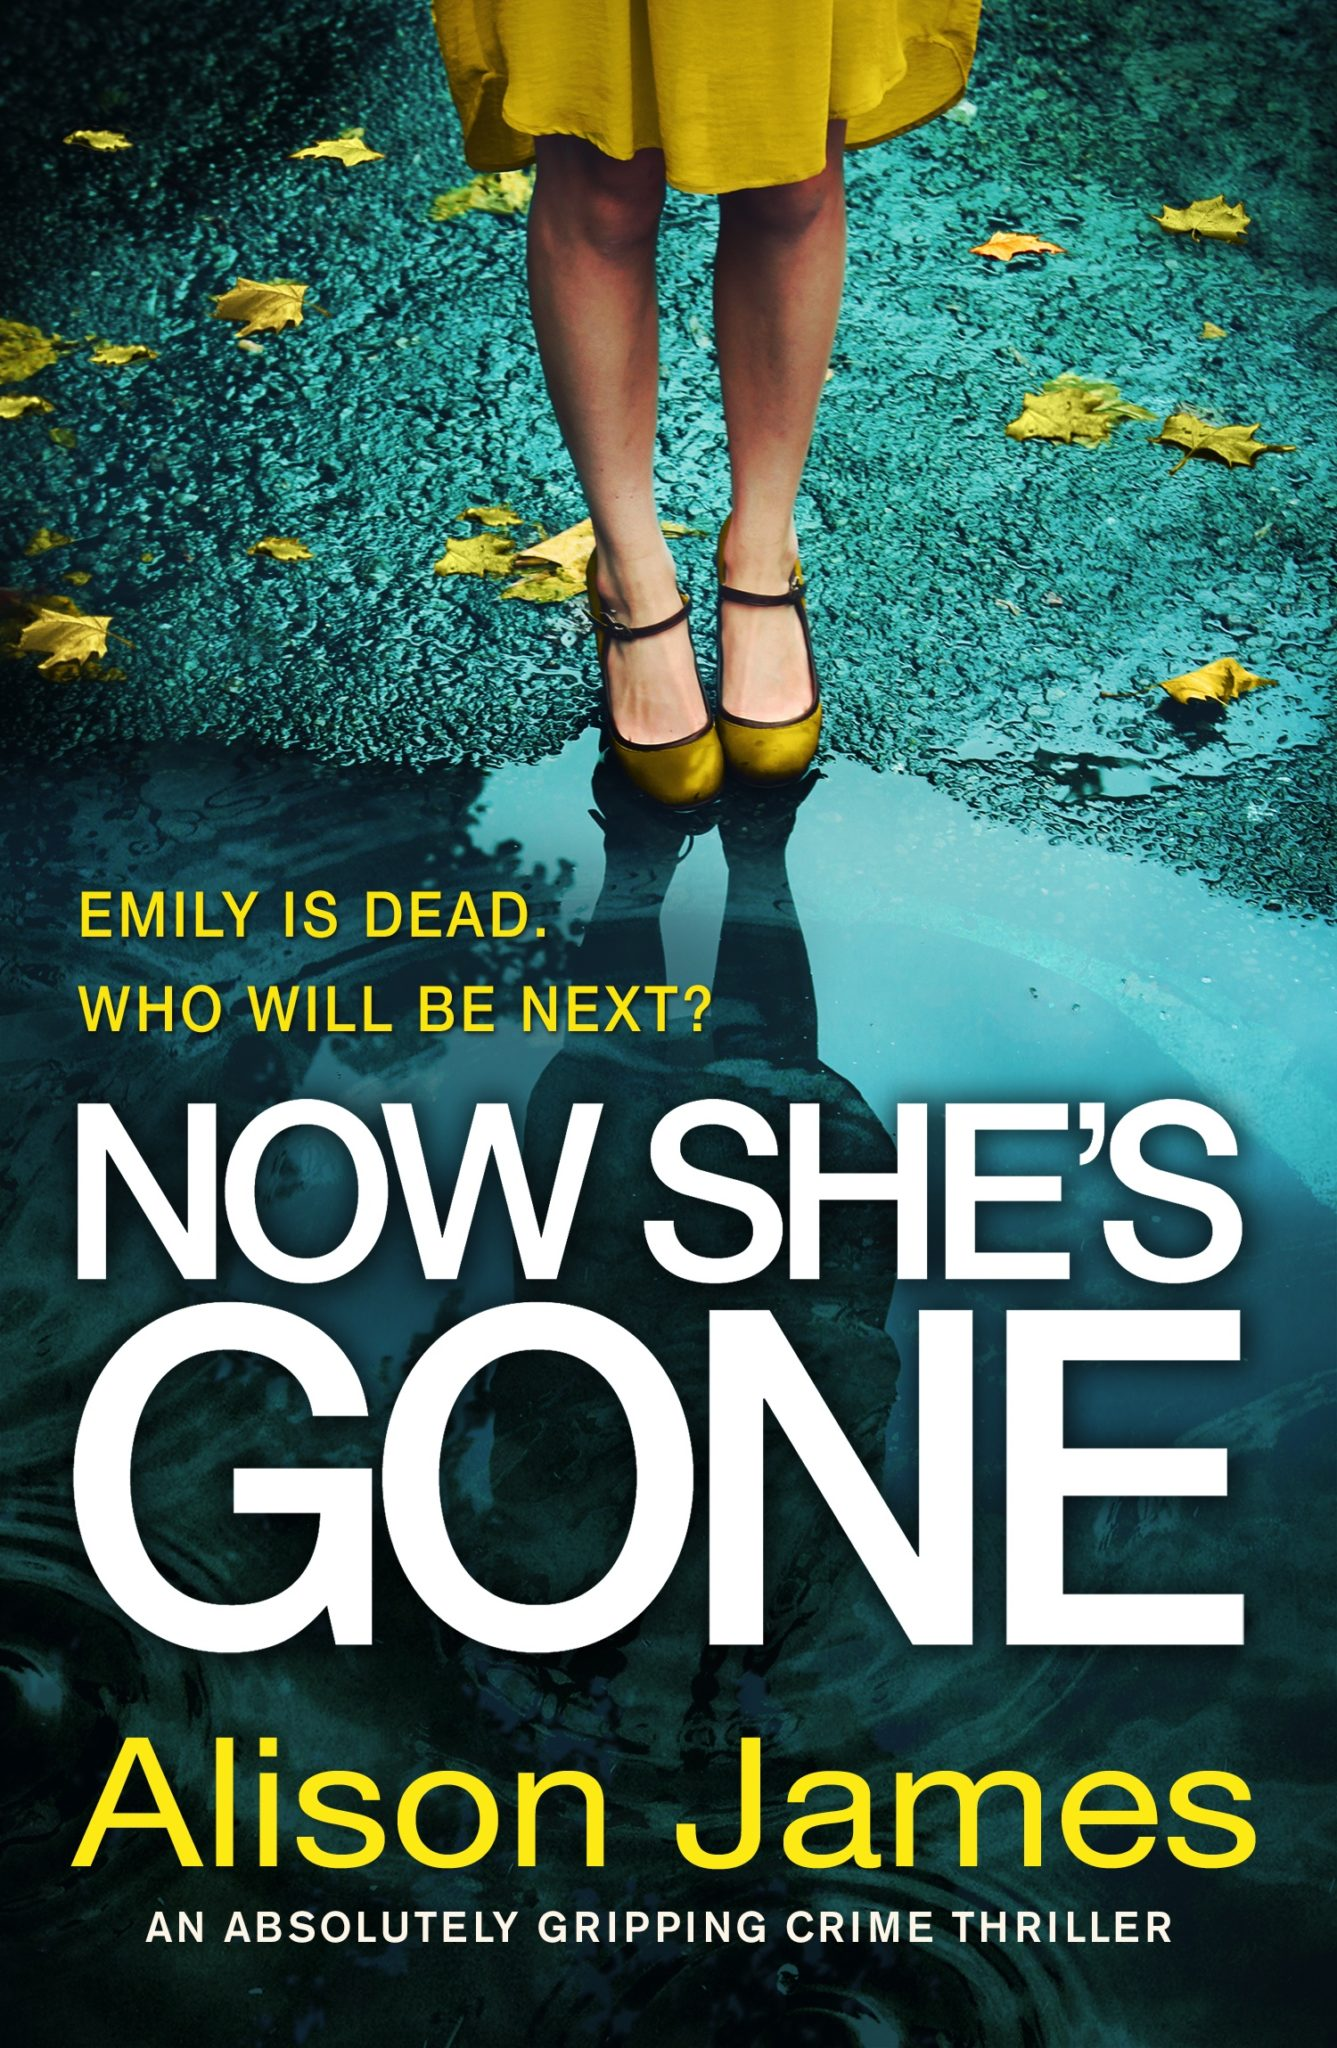 Now She's Gone  by Alison James